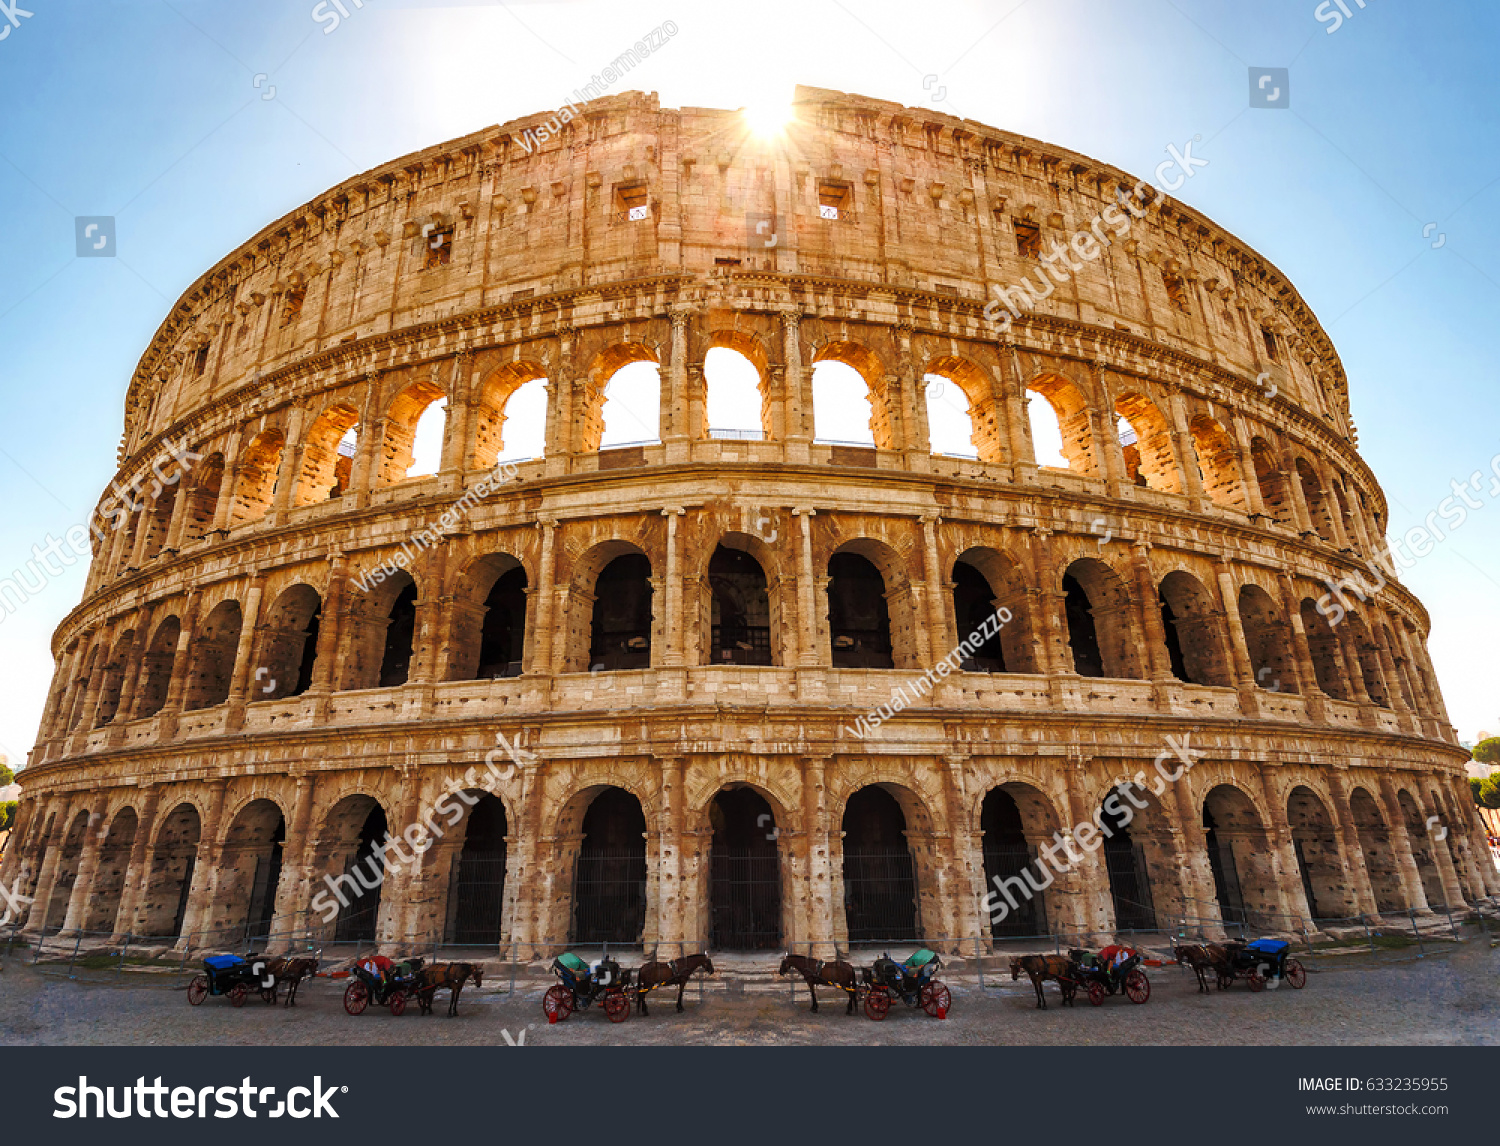 Colosseum in Rome, photos and description of the majestic amphitheater